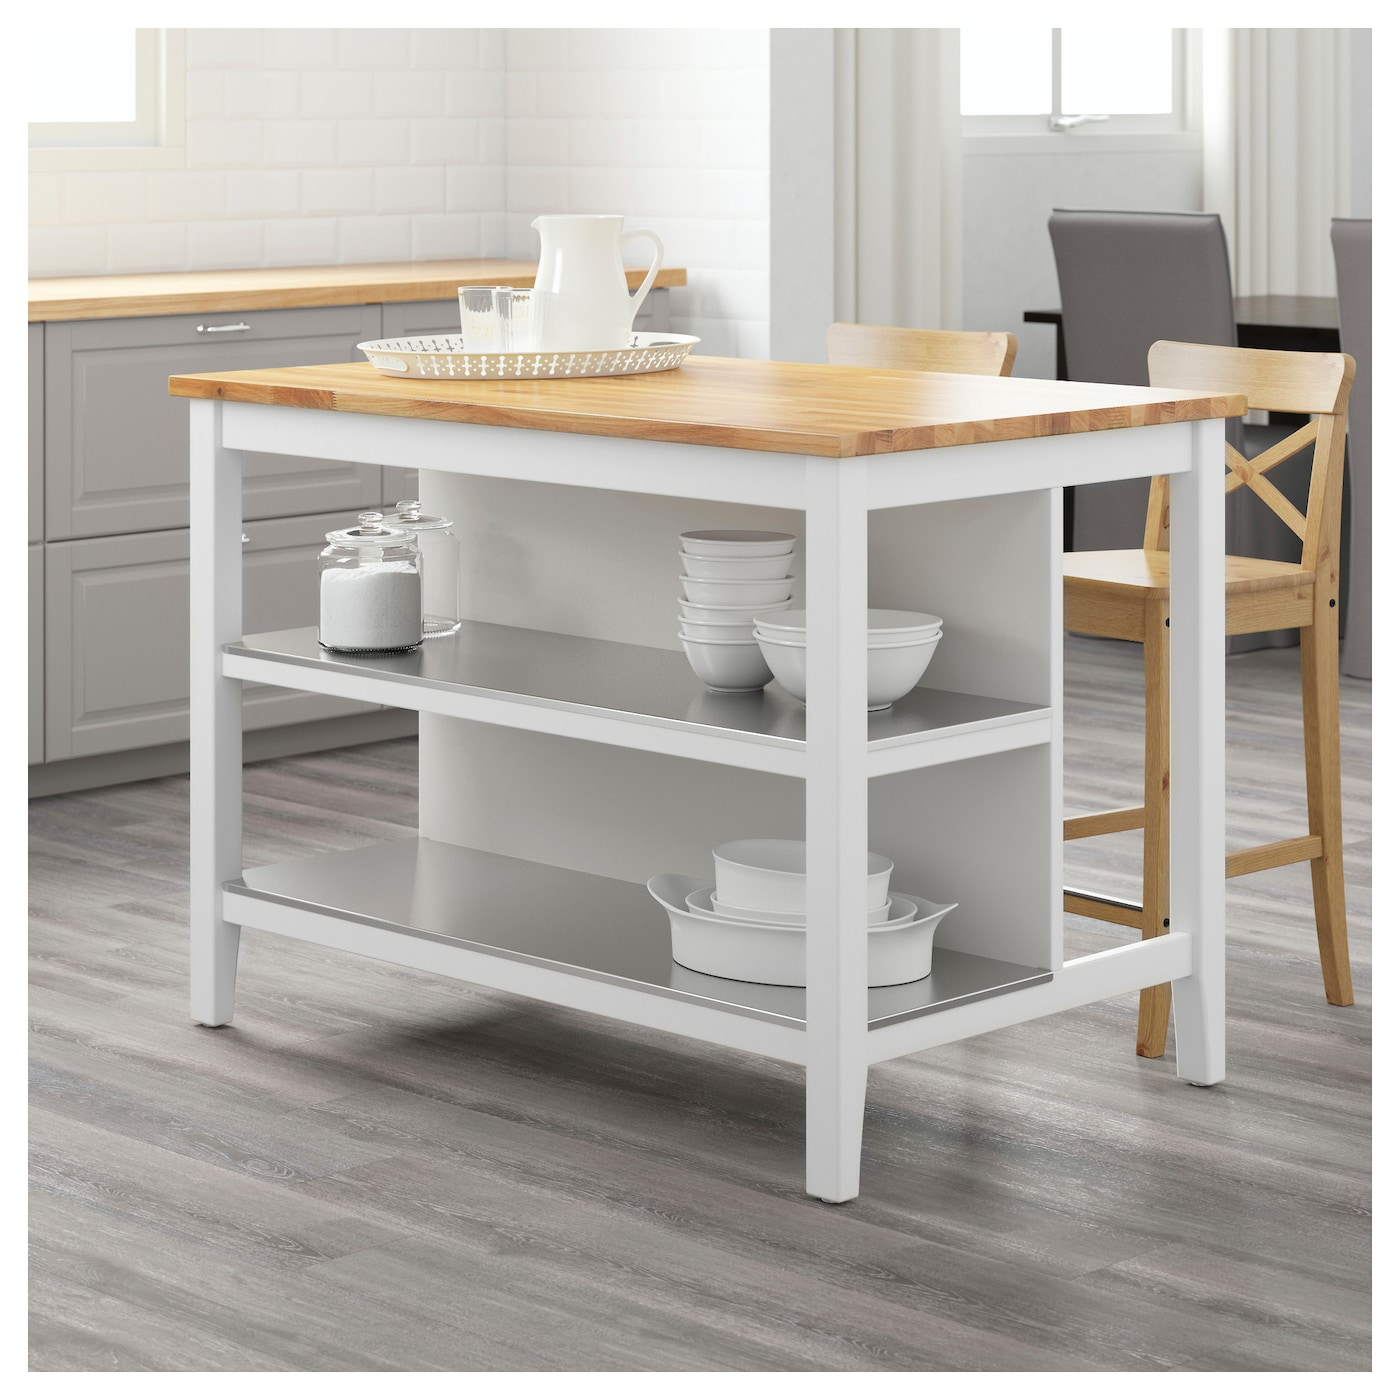 Ikea Kitchen Cart: STENSTORP Kitchen Island White/oak 126 X 79 Cm